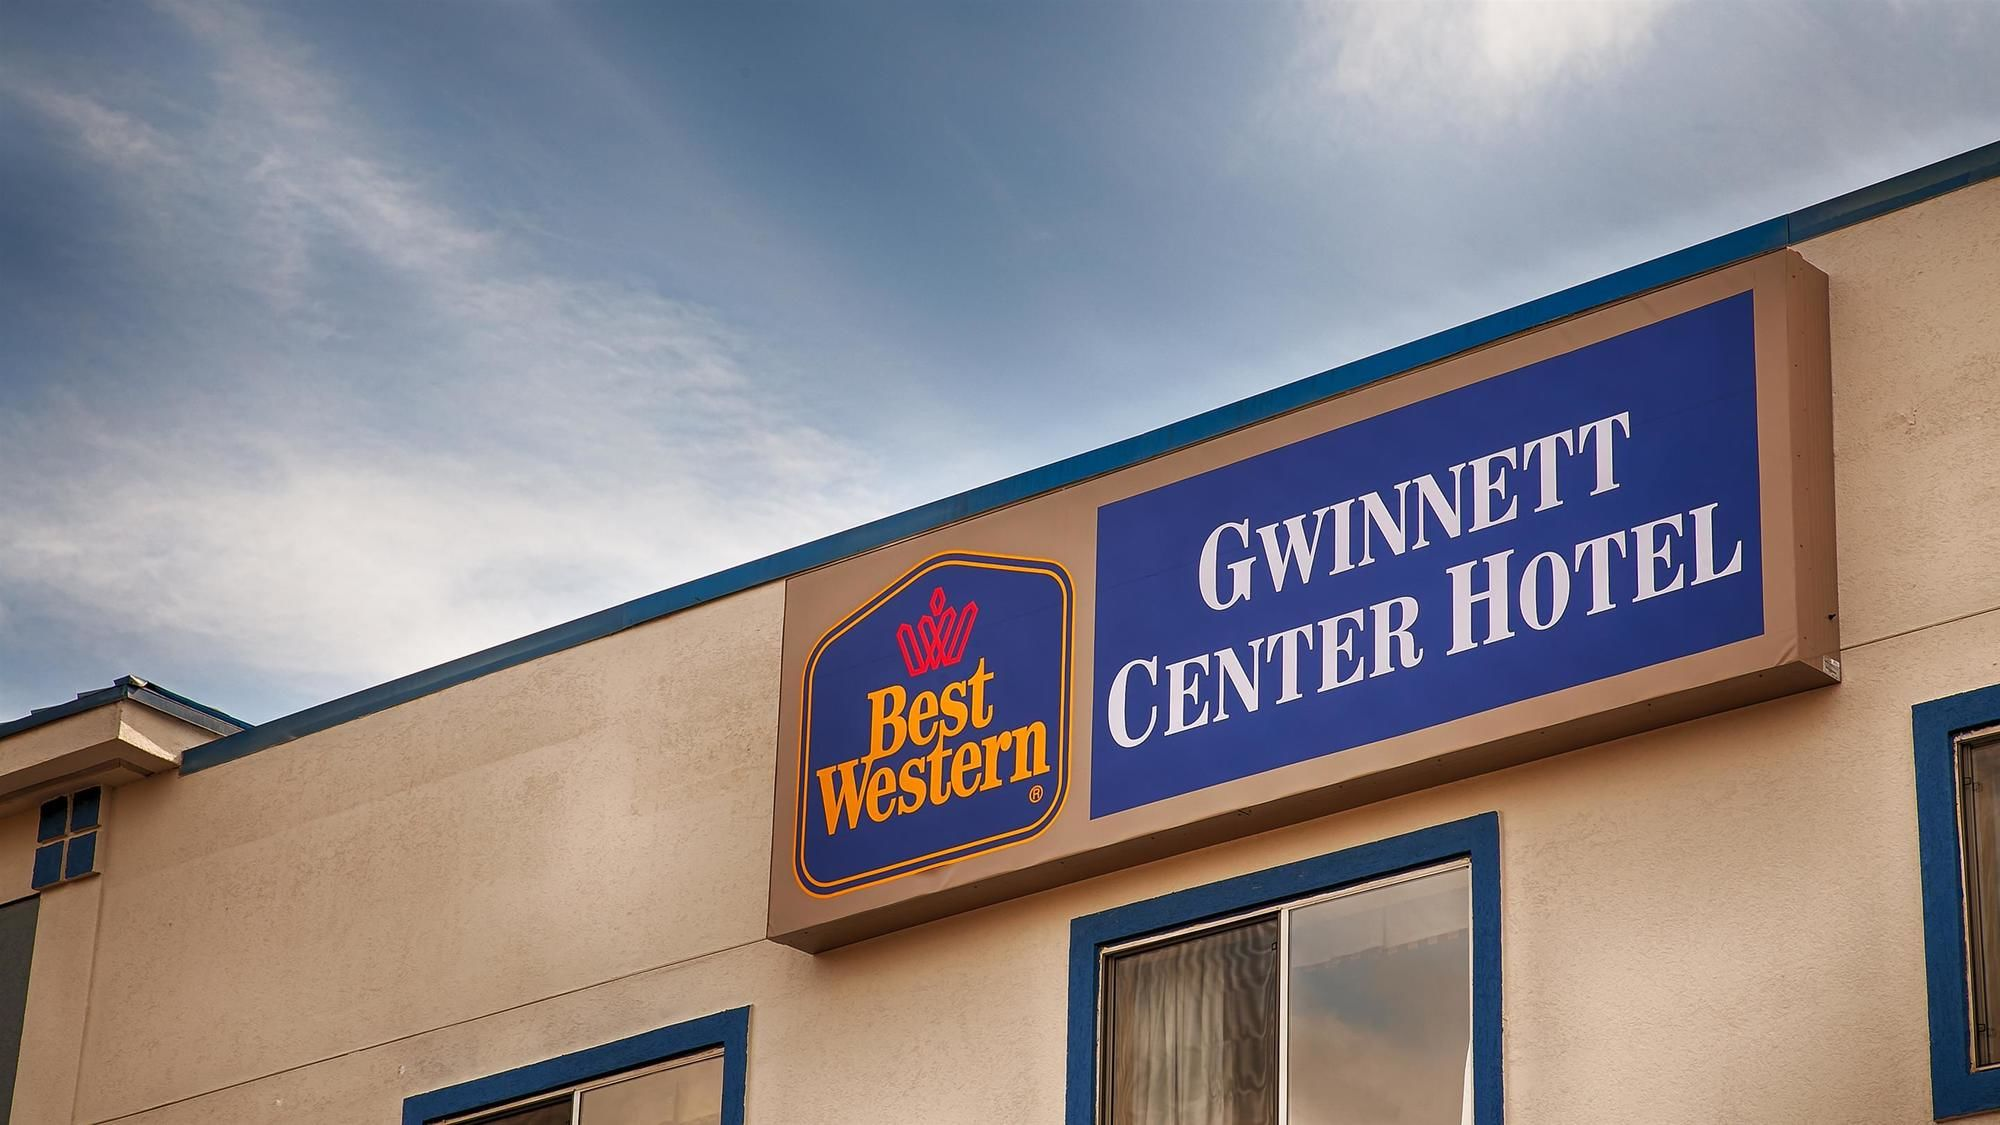 Best Western Gwinnett Center Hotel